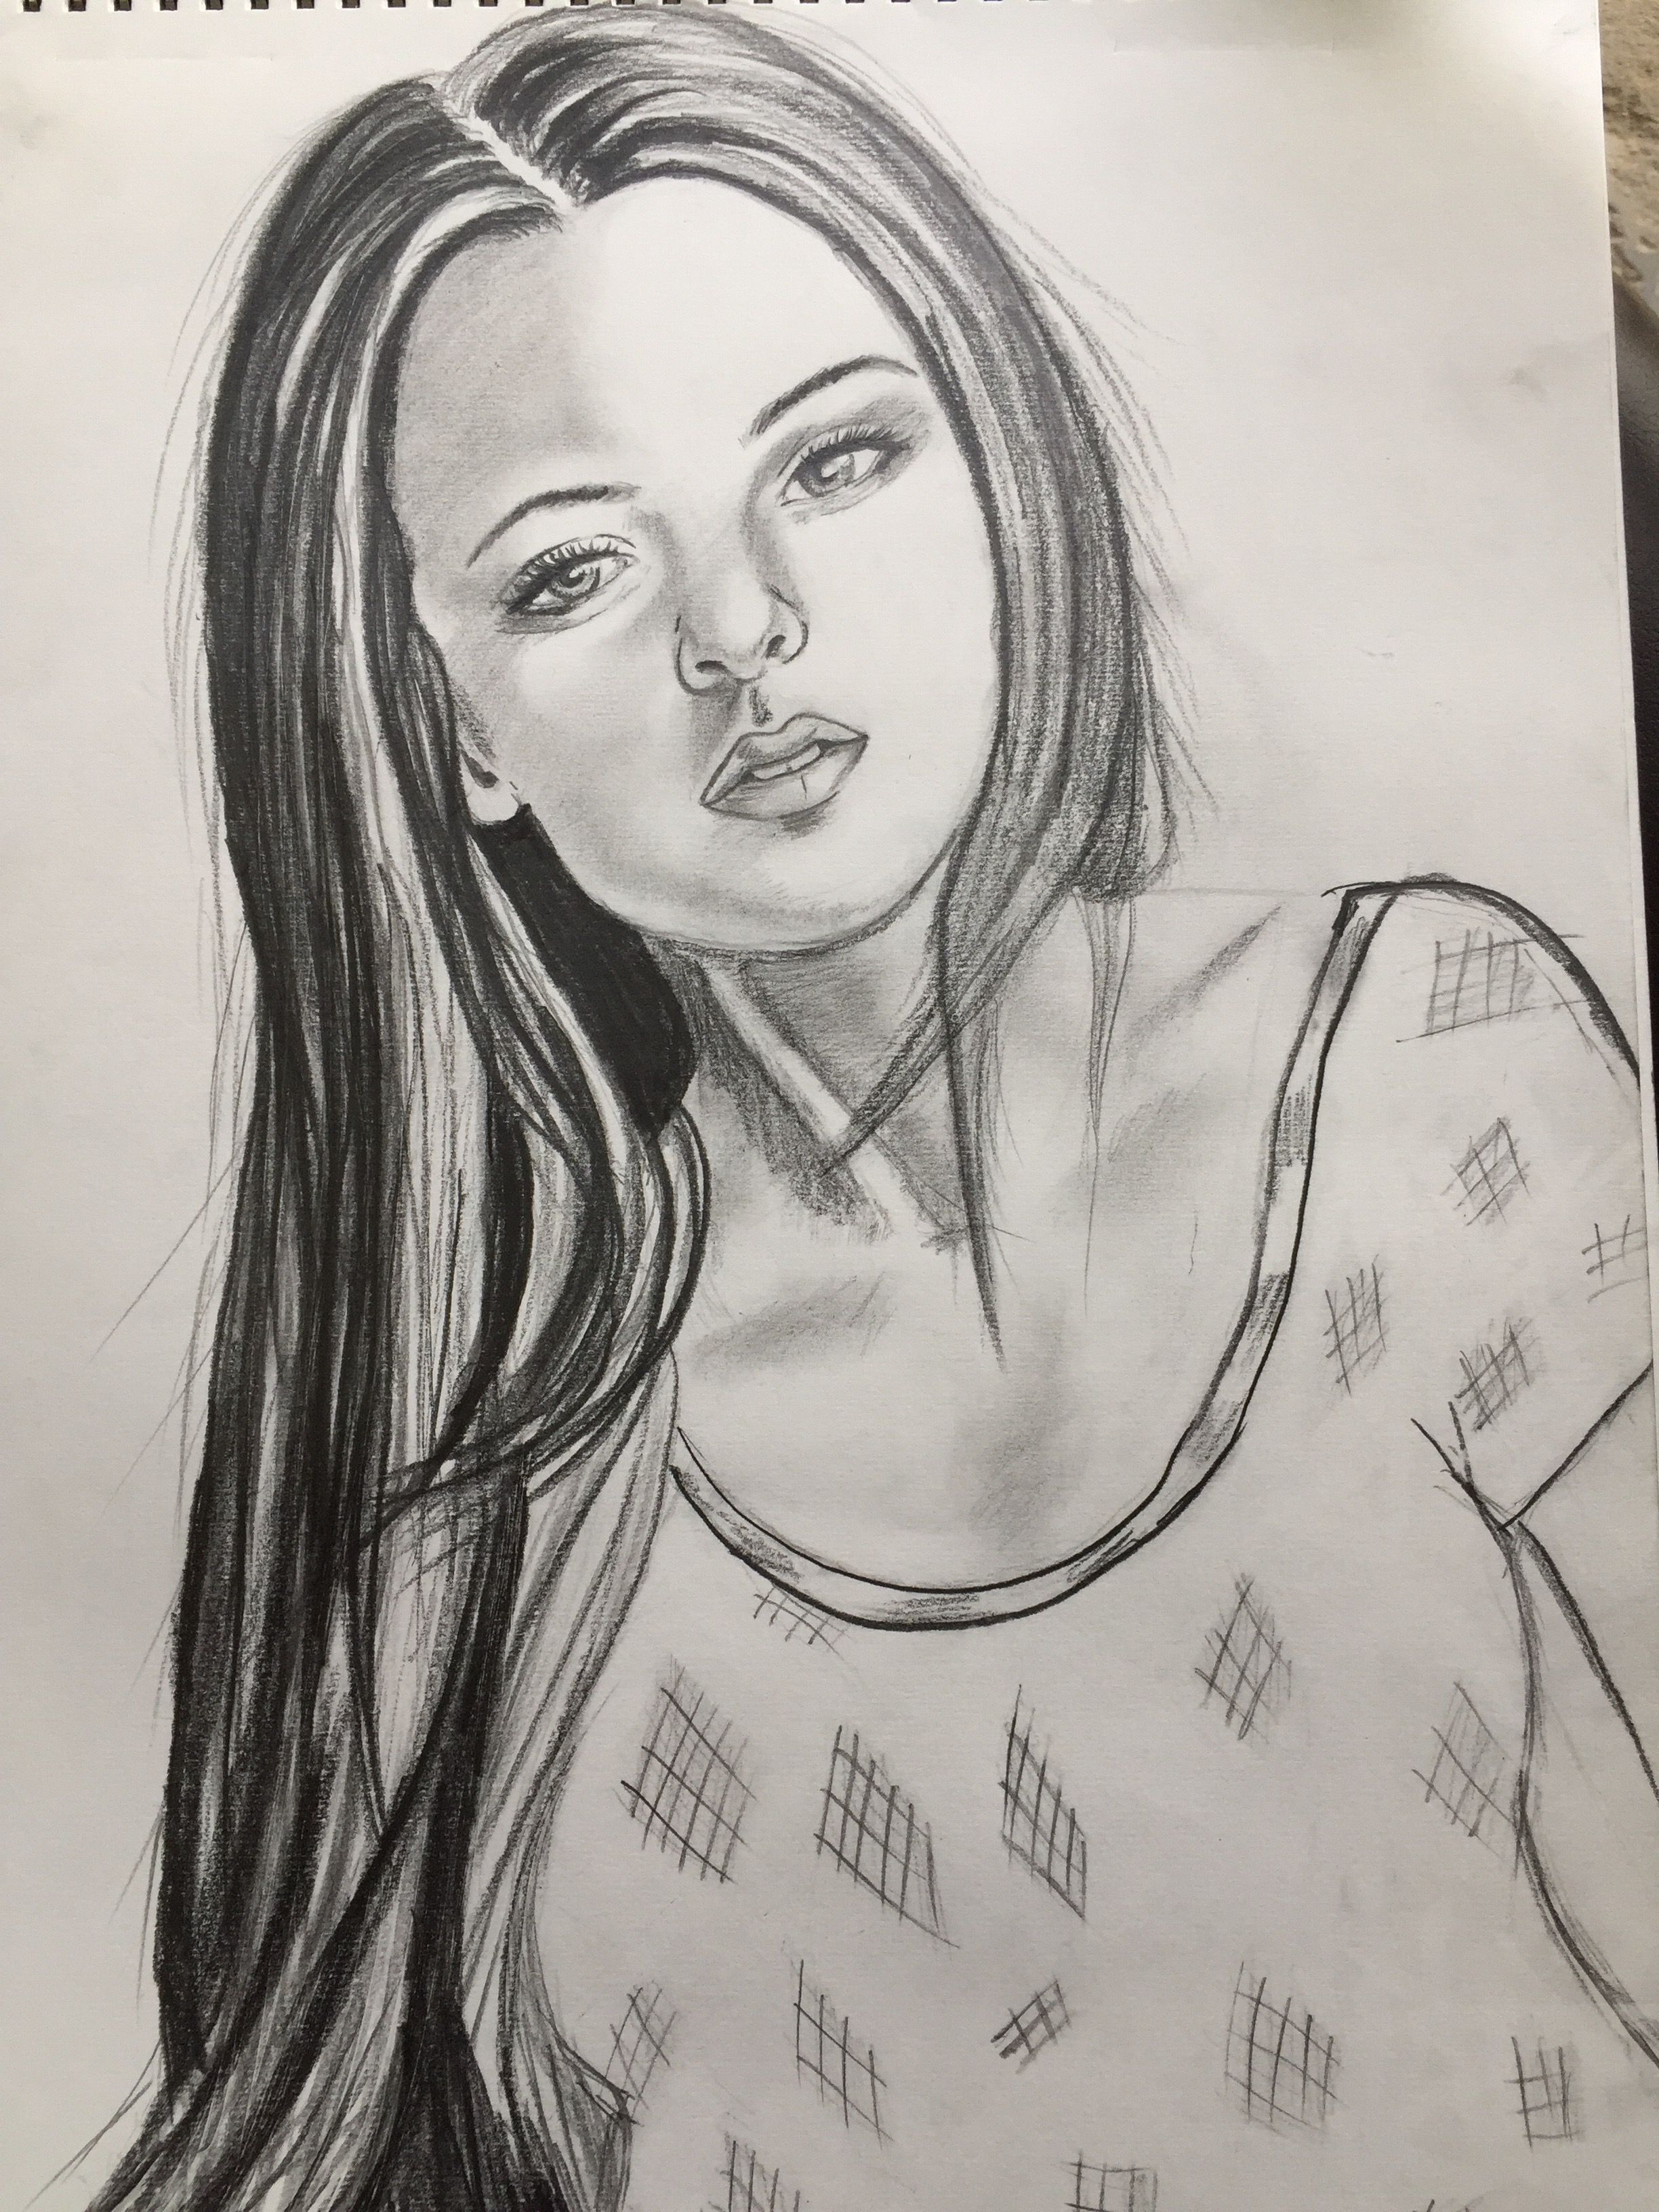 Friends this time its a complete pencil sketch of a beautiful girl i made with hb pencil and i am very happy to share it with all of you as this portrait